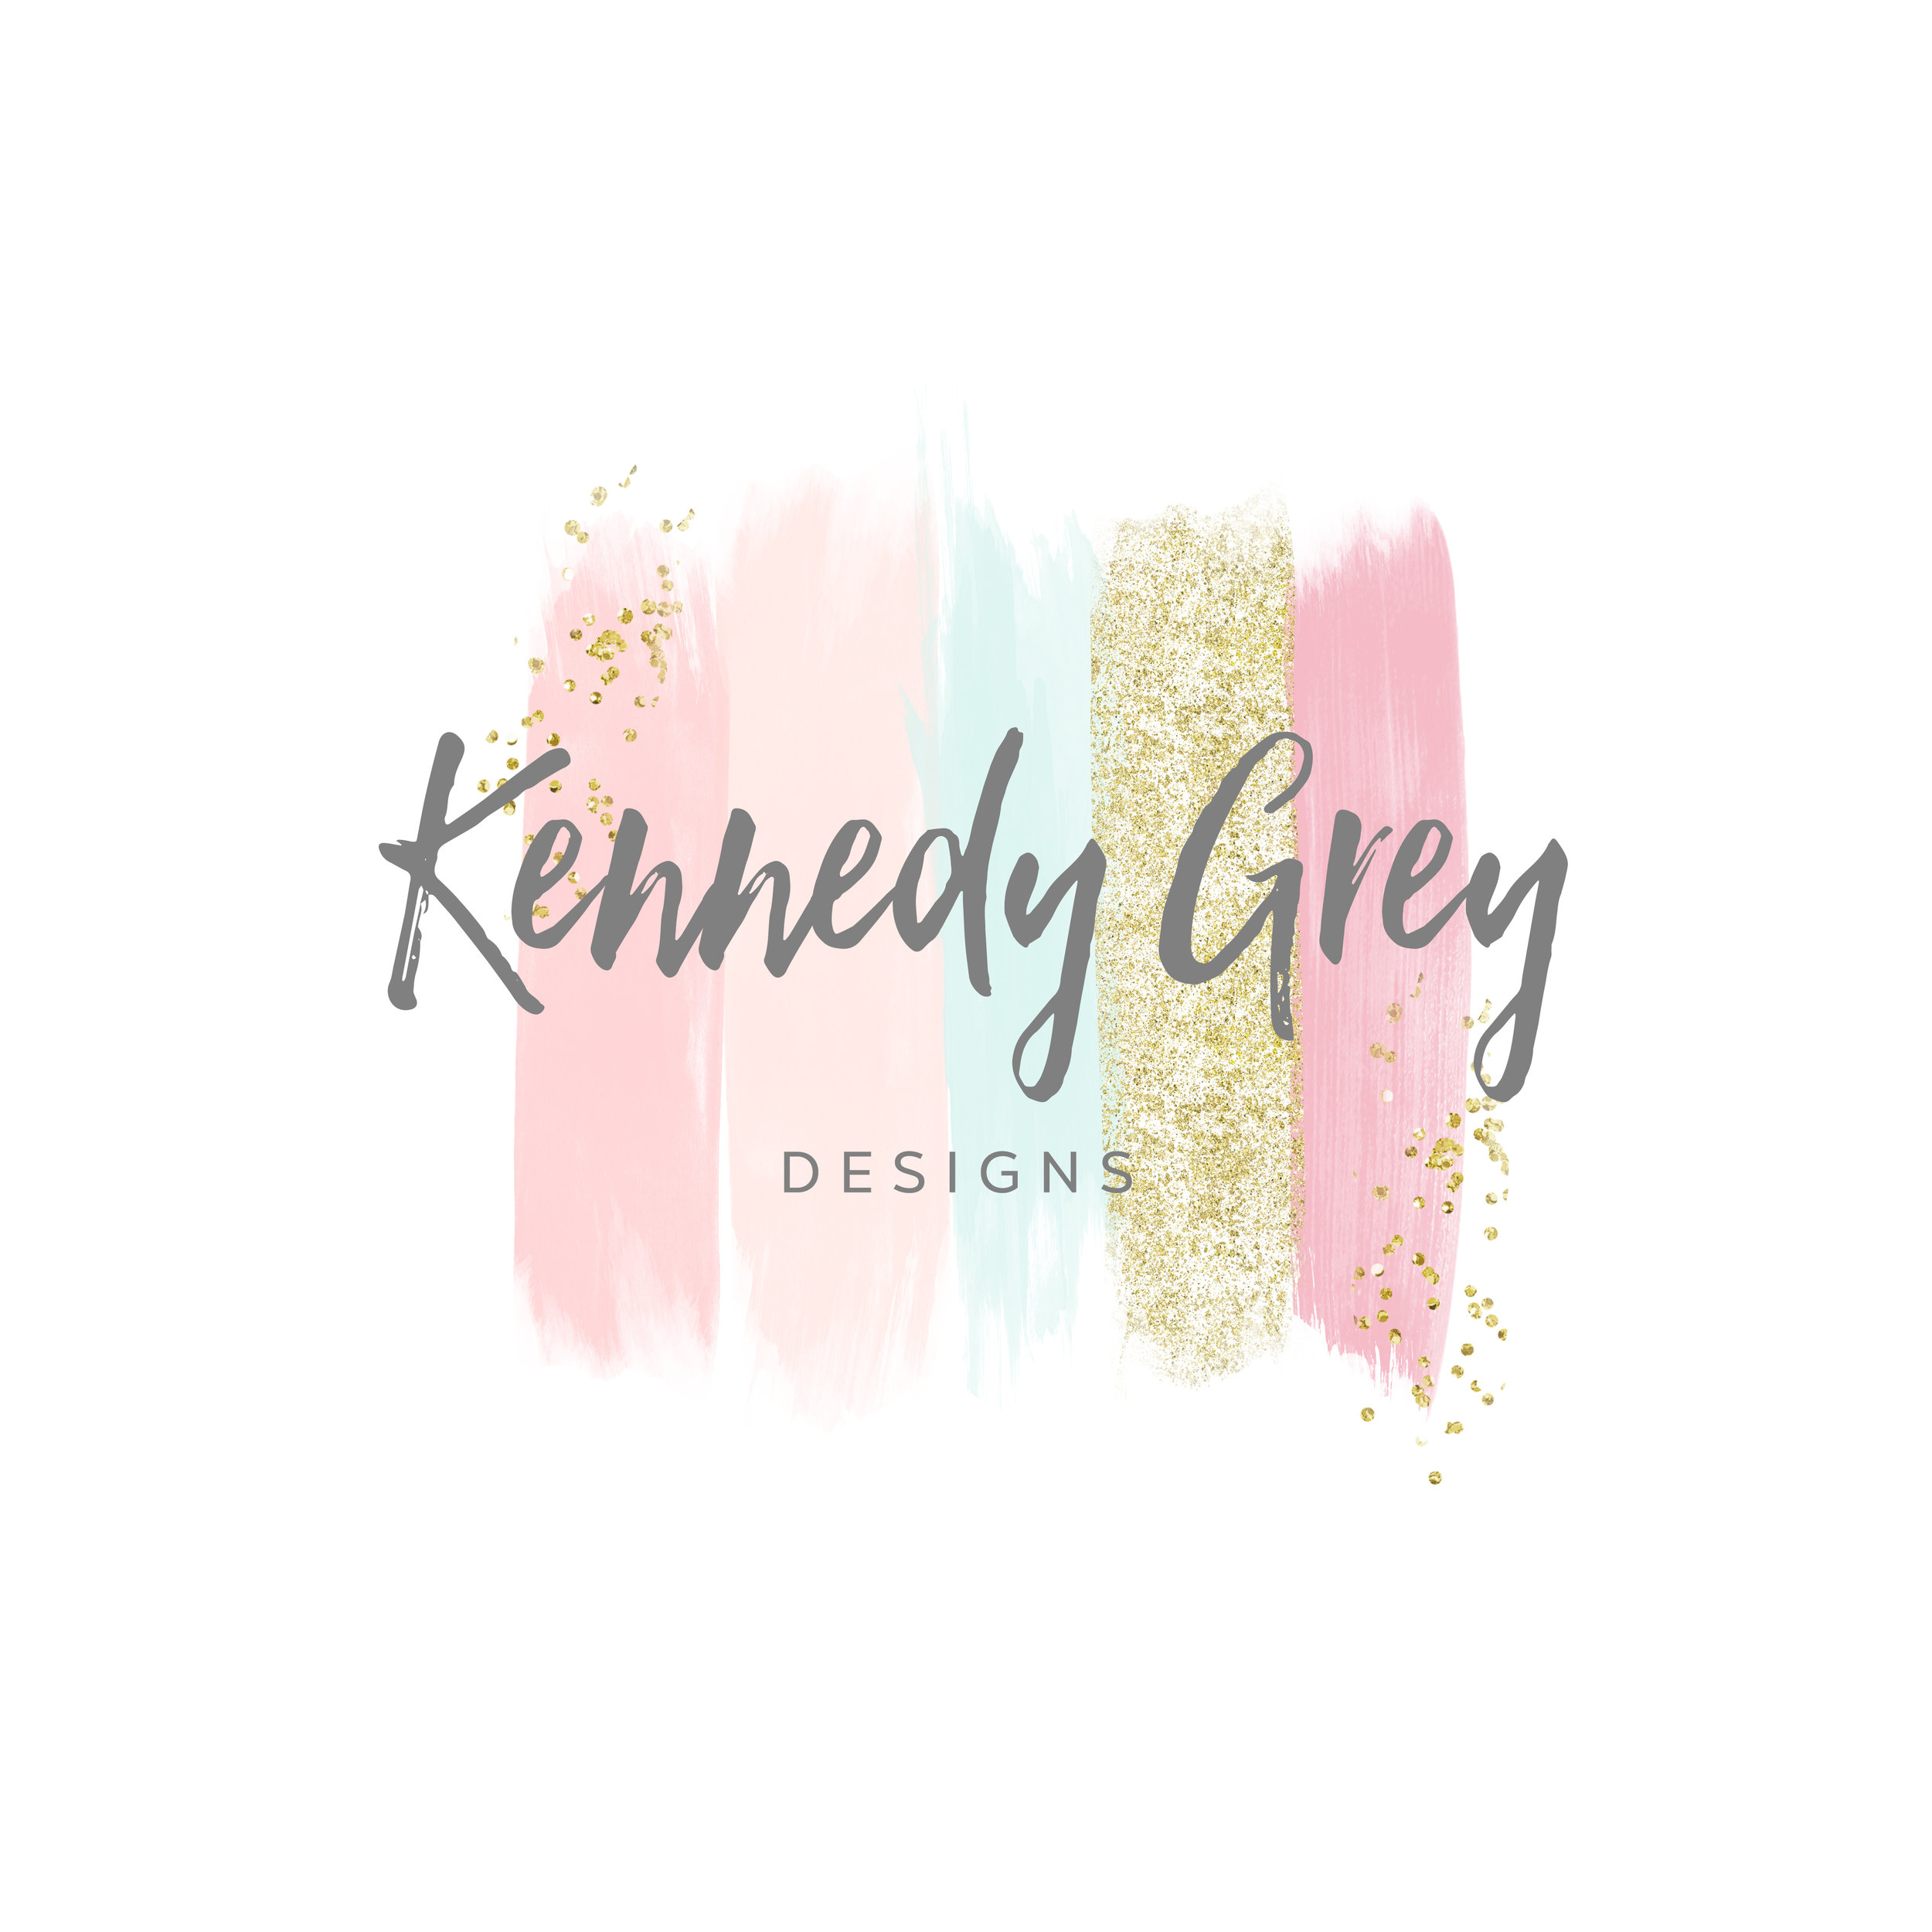 kennedy grey designs